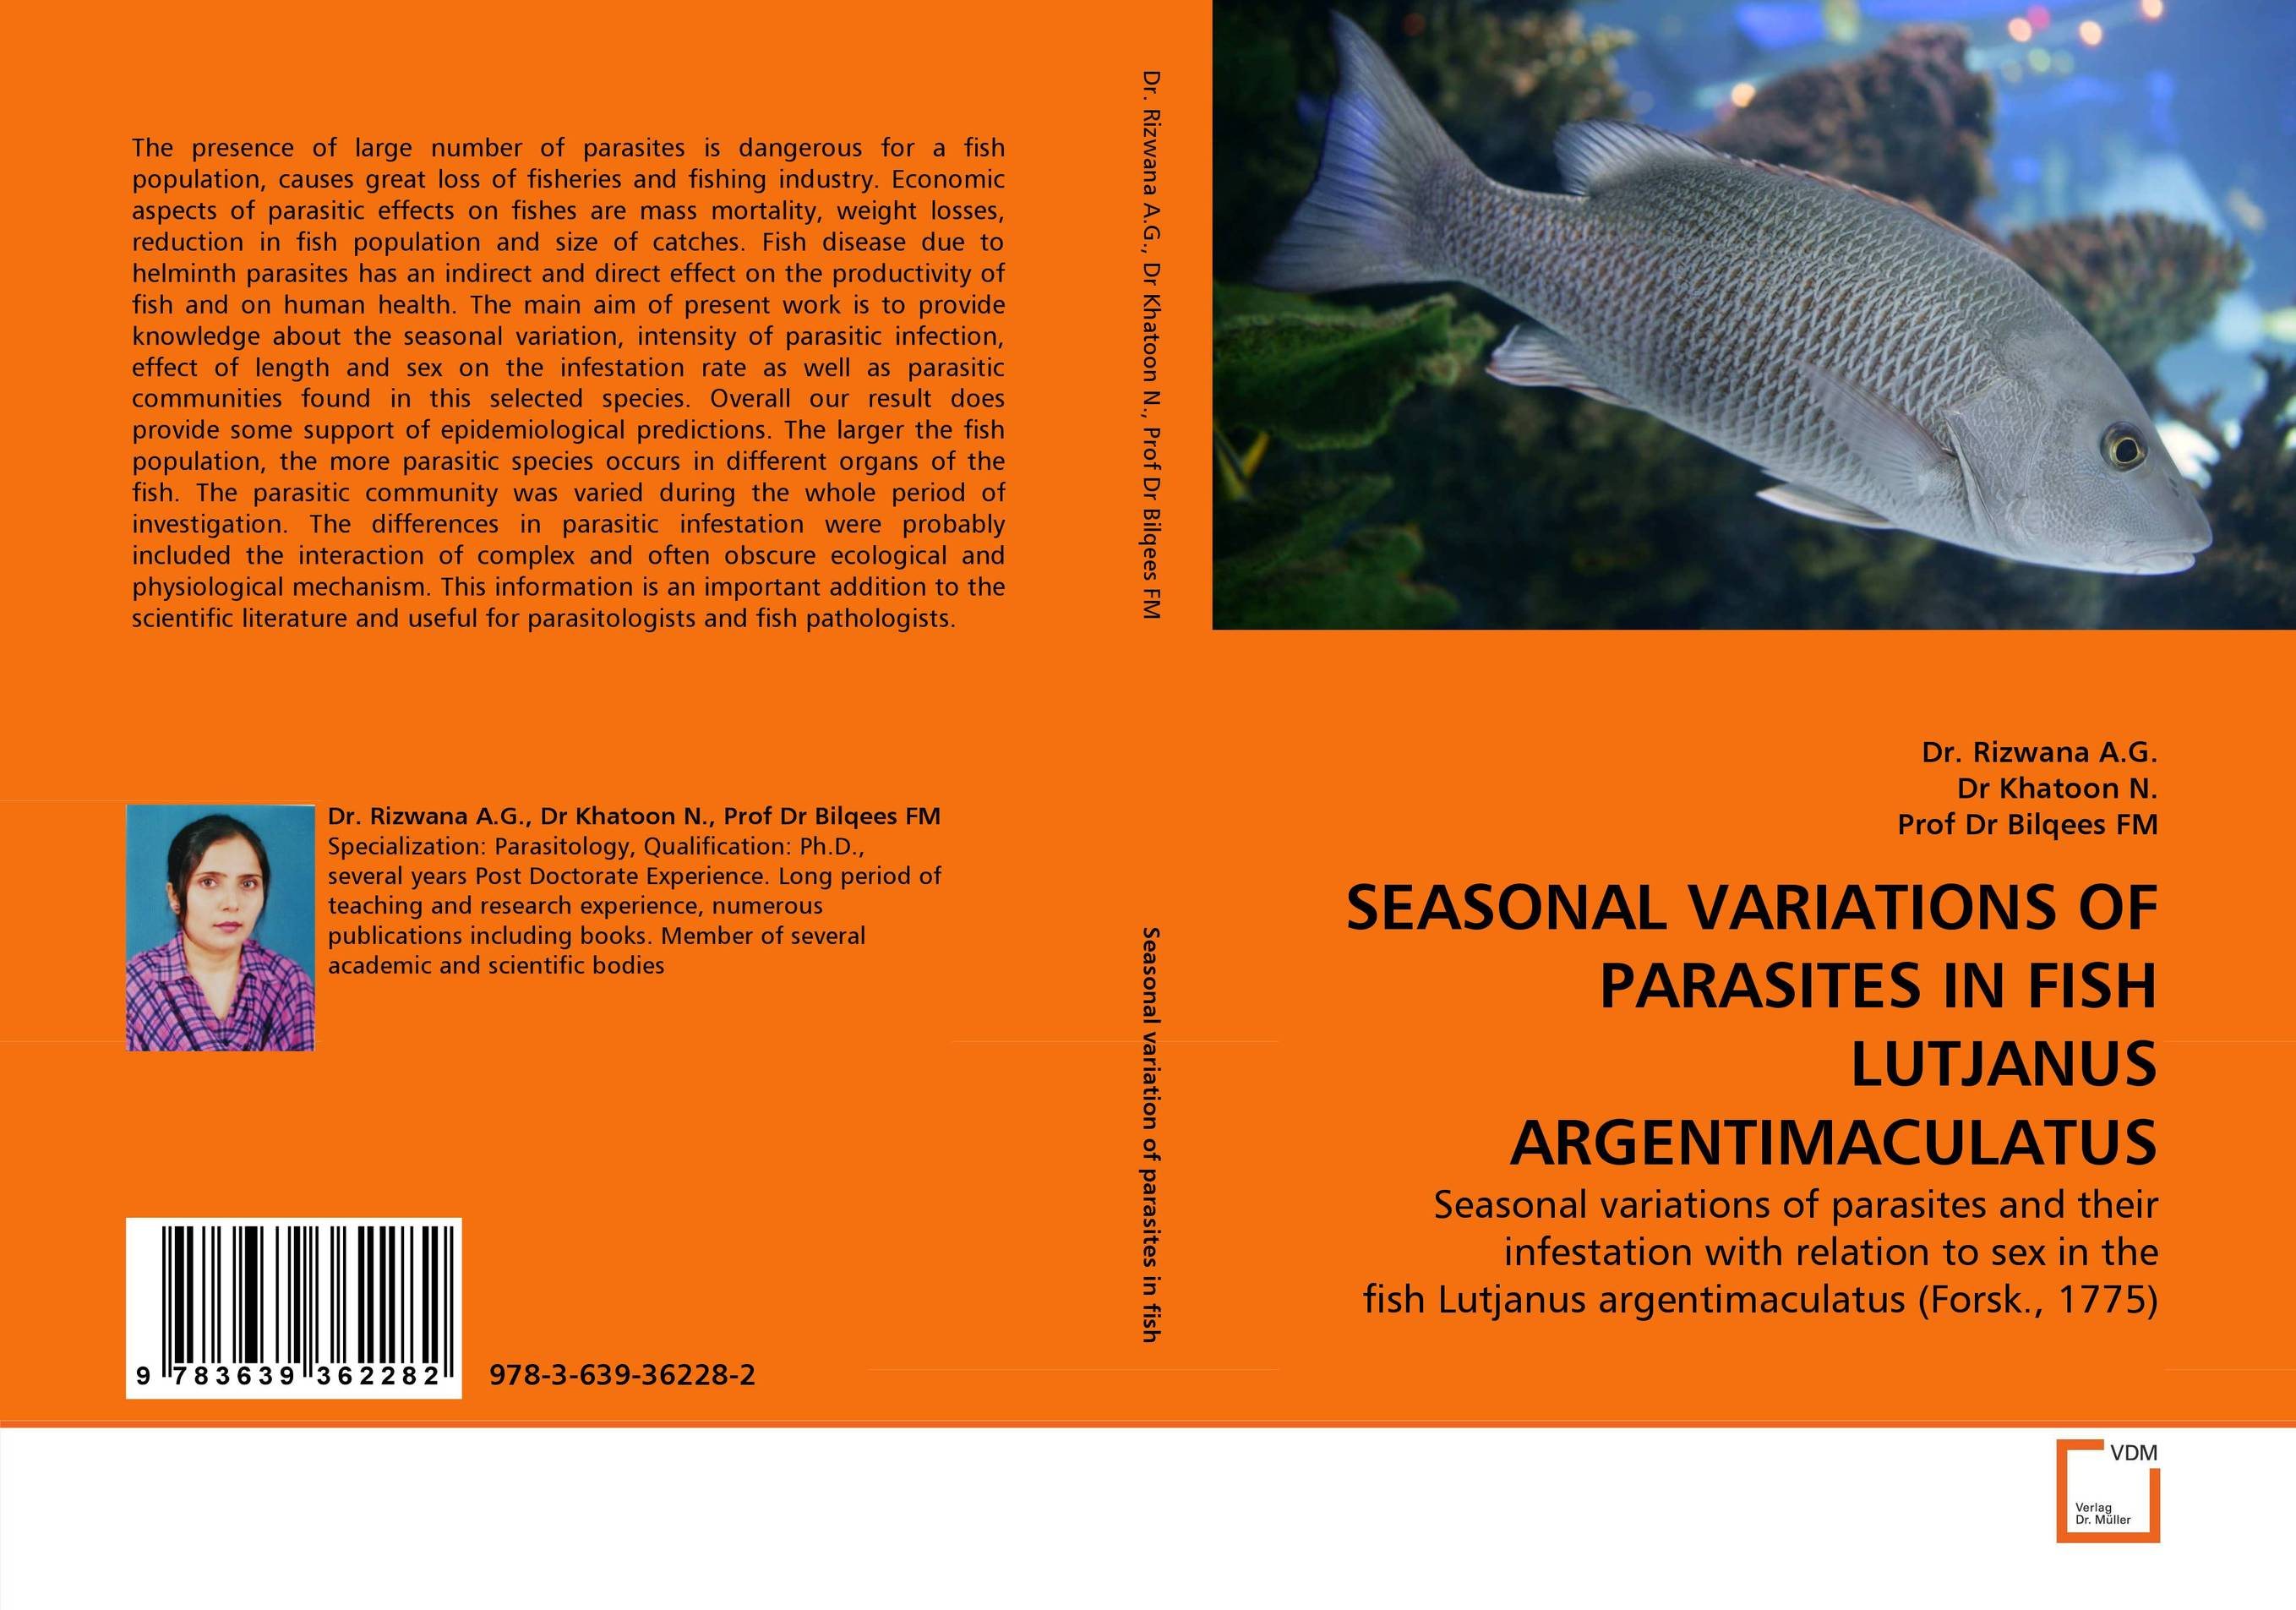 SEASONAL VARIATIONS OF PARASITES IN FISH LUTJANUS ARGENTIMACULATUS parasitic wood